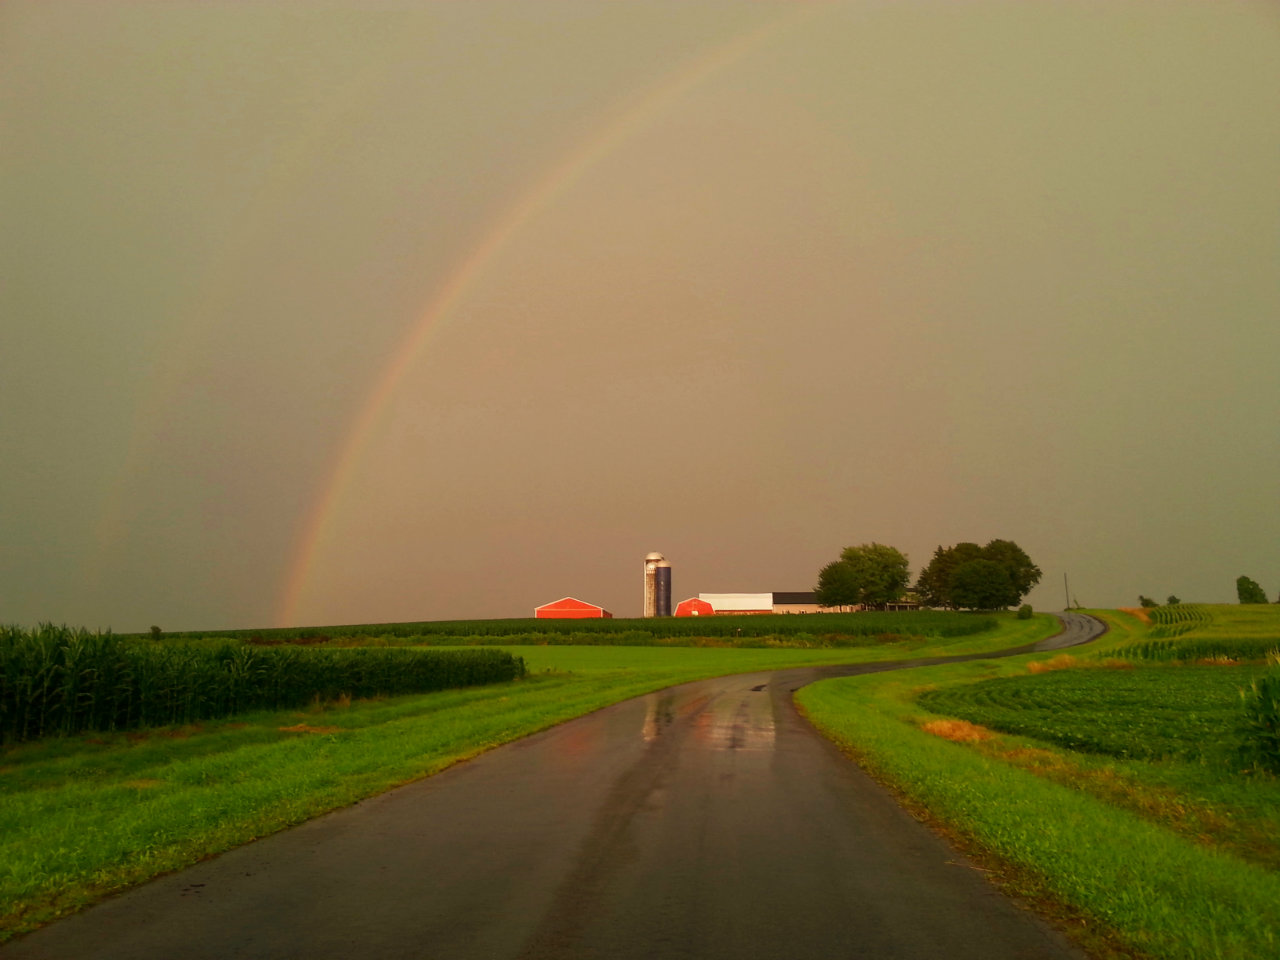 Rainbow after the storm (photo)